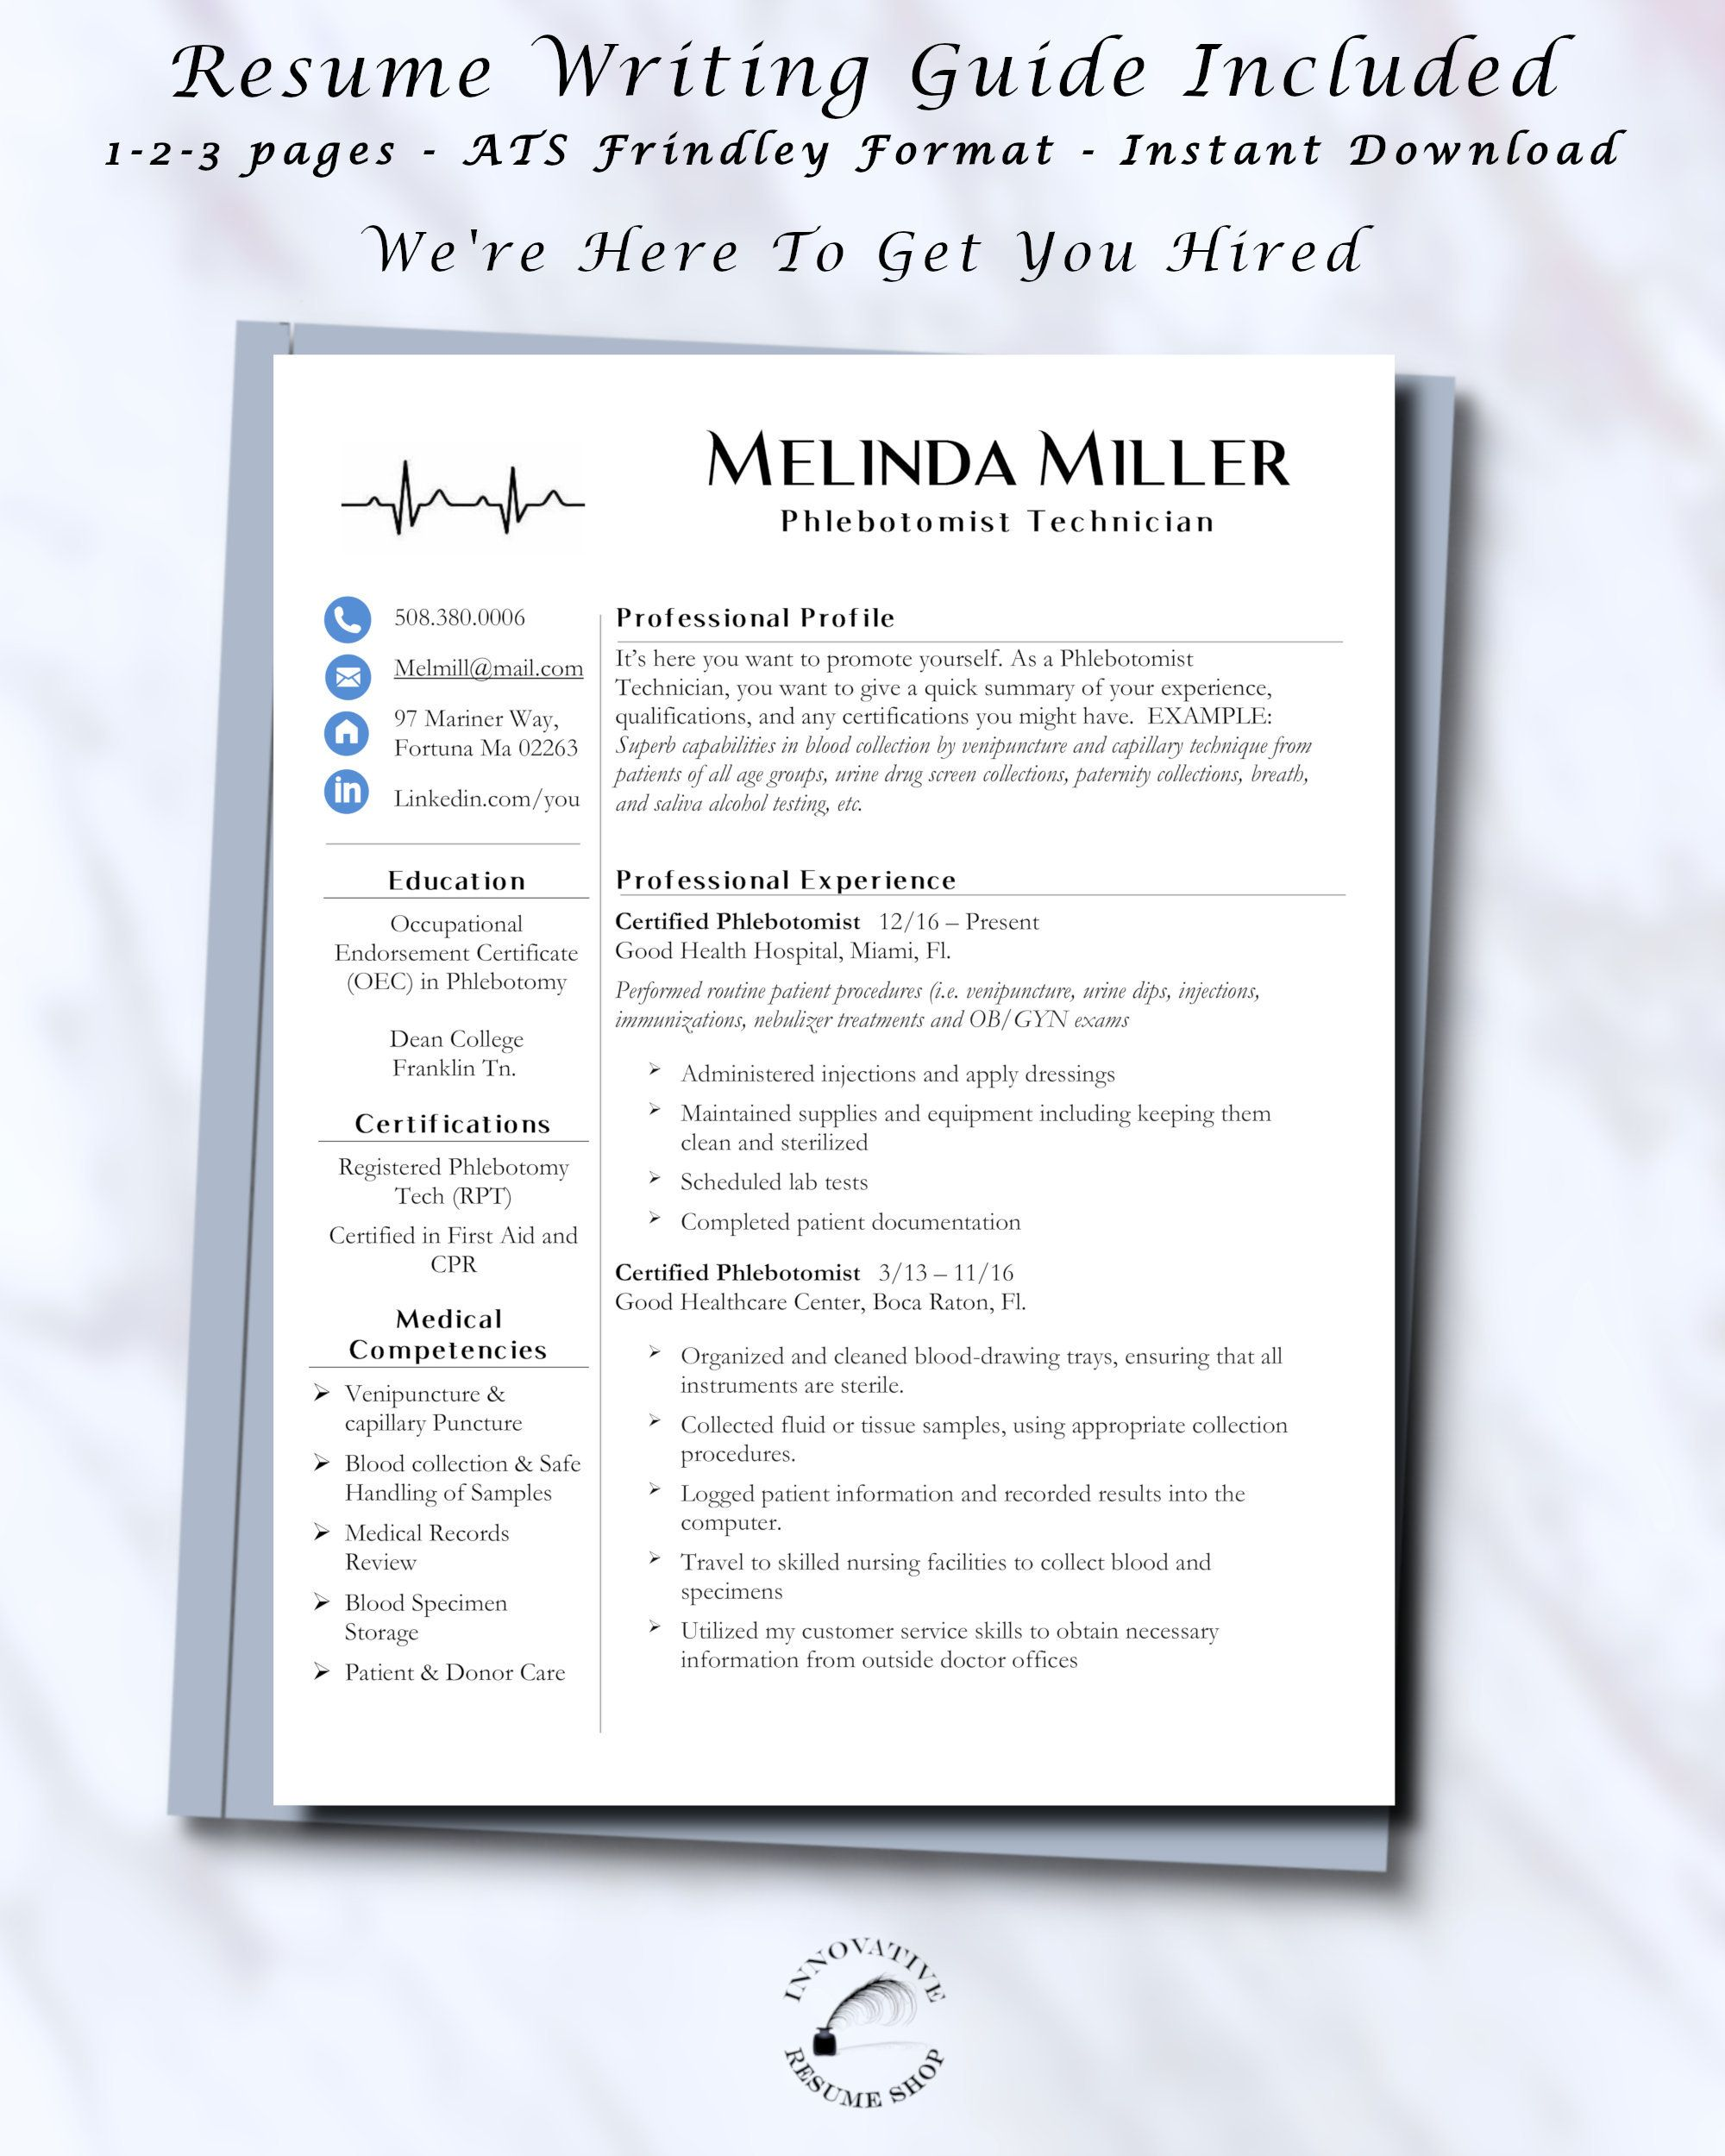 Phlebotomist Tech Medical Asst Resume Template With Etsy Medical Assistant Resume Resume Good Resume Examples